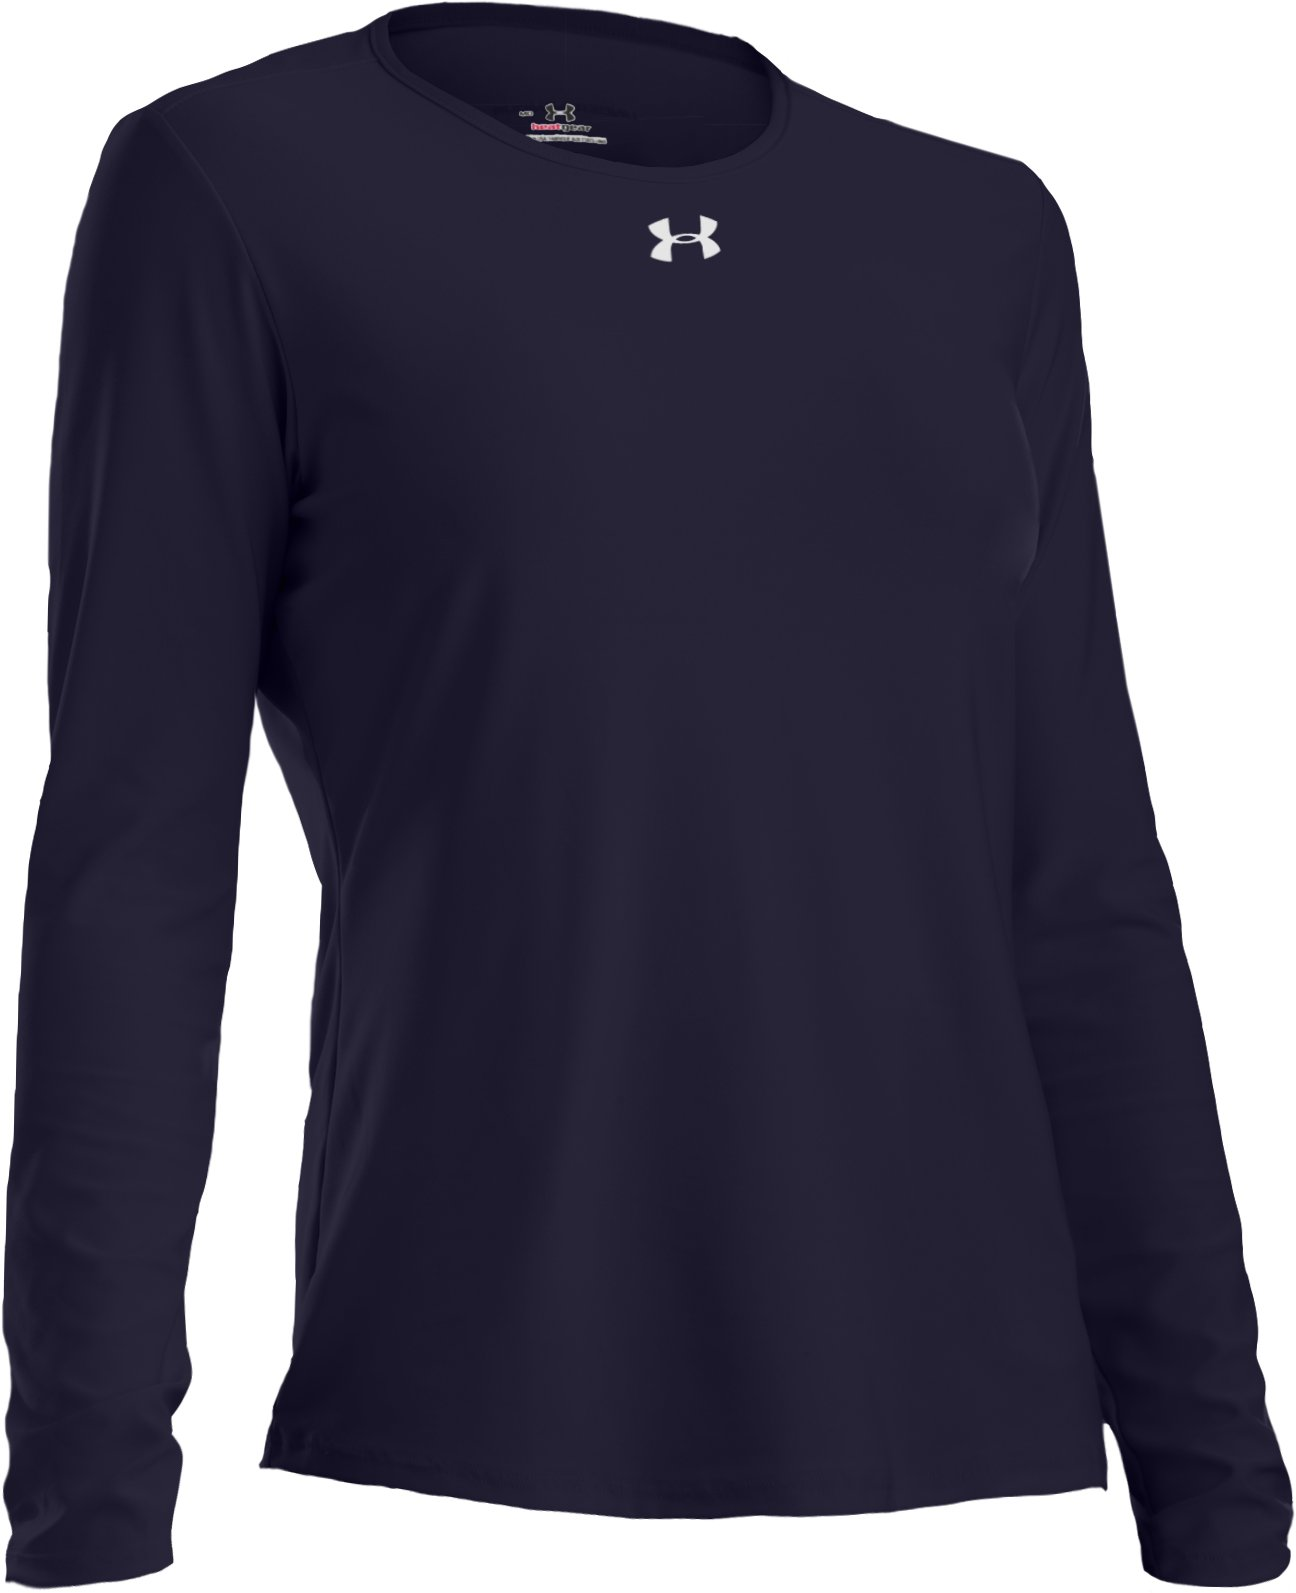 Women's Locker Long Sleeve T-Shirt, Midnight Navy